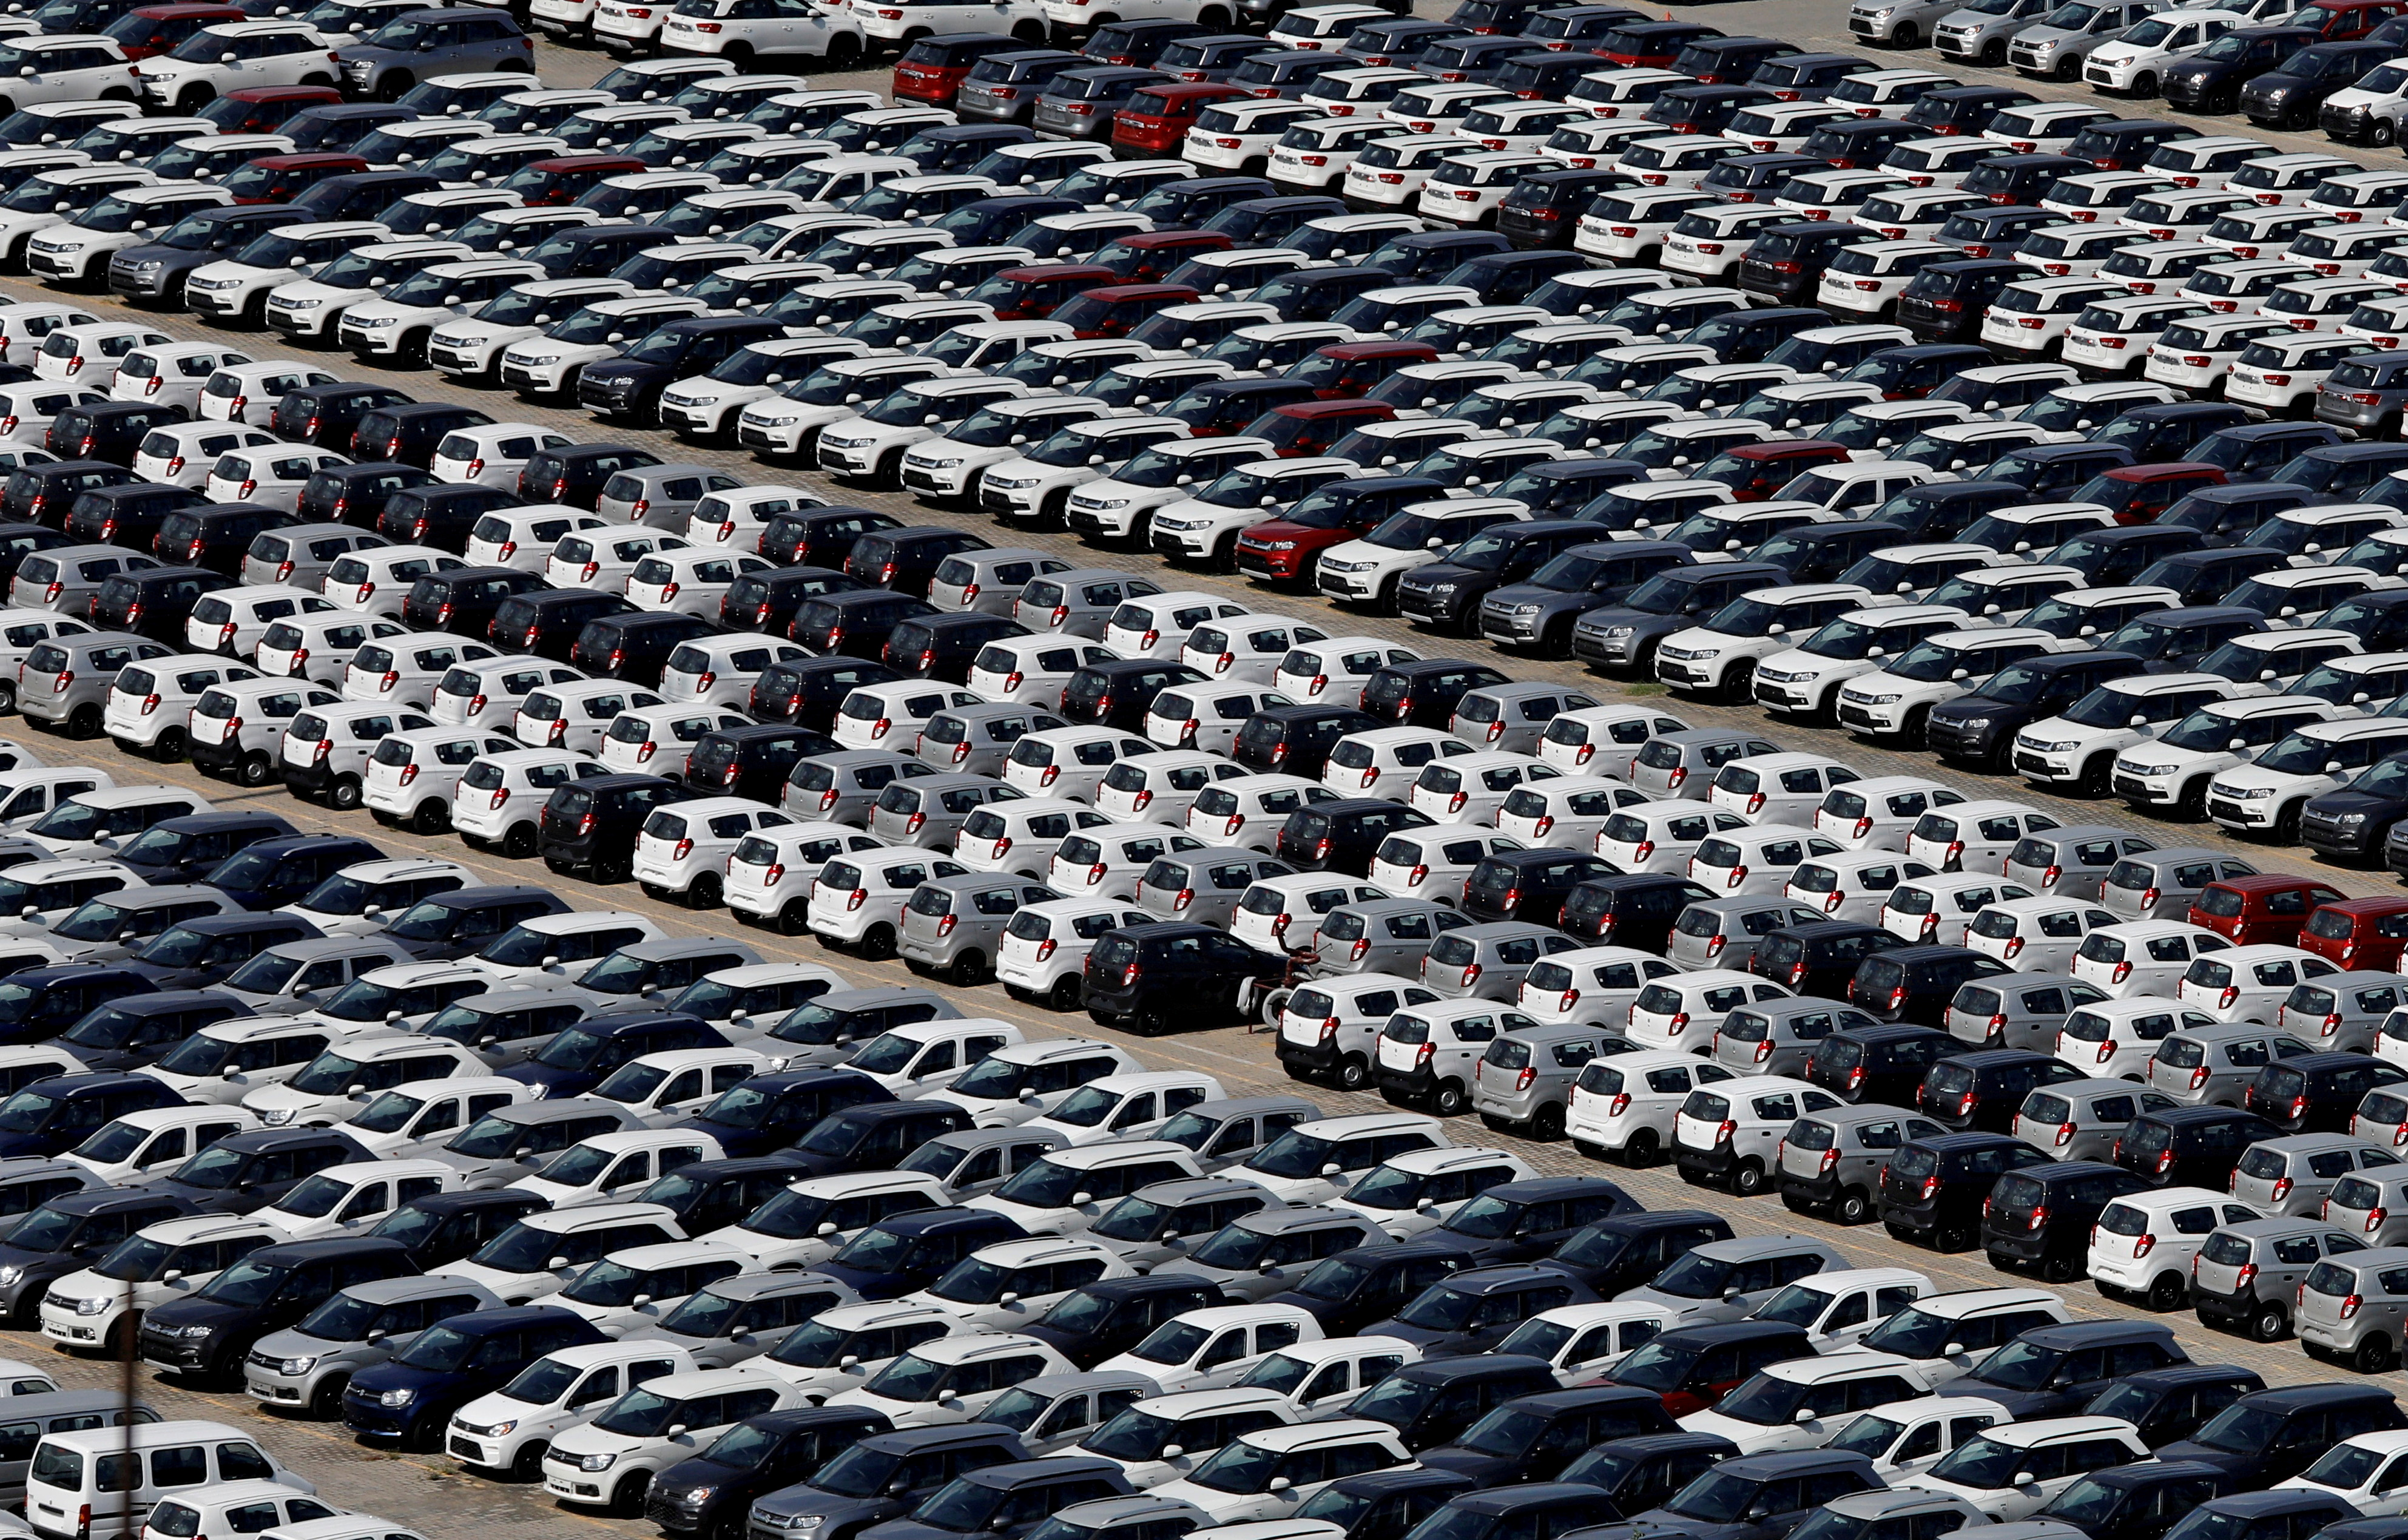 Cars are seen parked at Maruti Suzuki's plant at Manesar, in the northern state of Haryana, India, August 11, 2019. REUTERS/Anushree Fadnavis